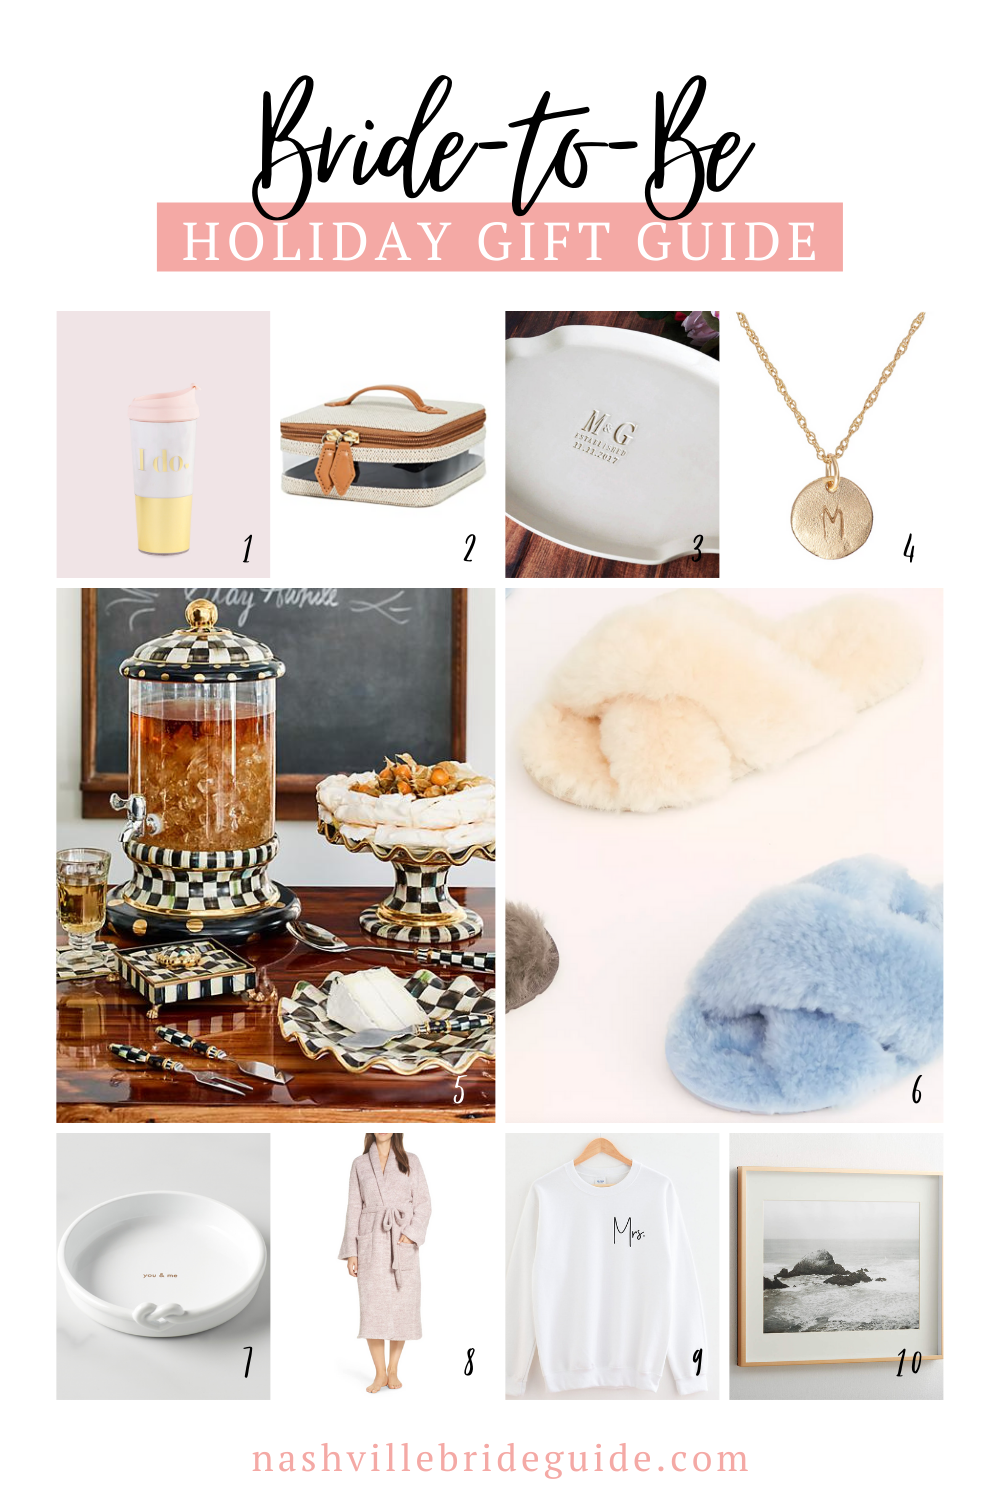 Bride to Be Holiday Gift Guide featured on Nashville Bride Guide